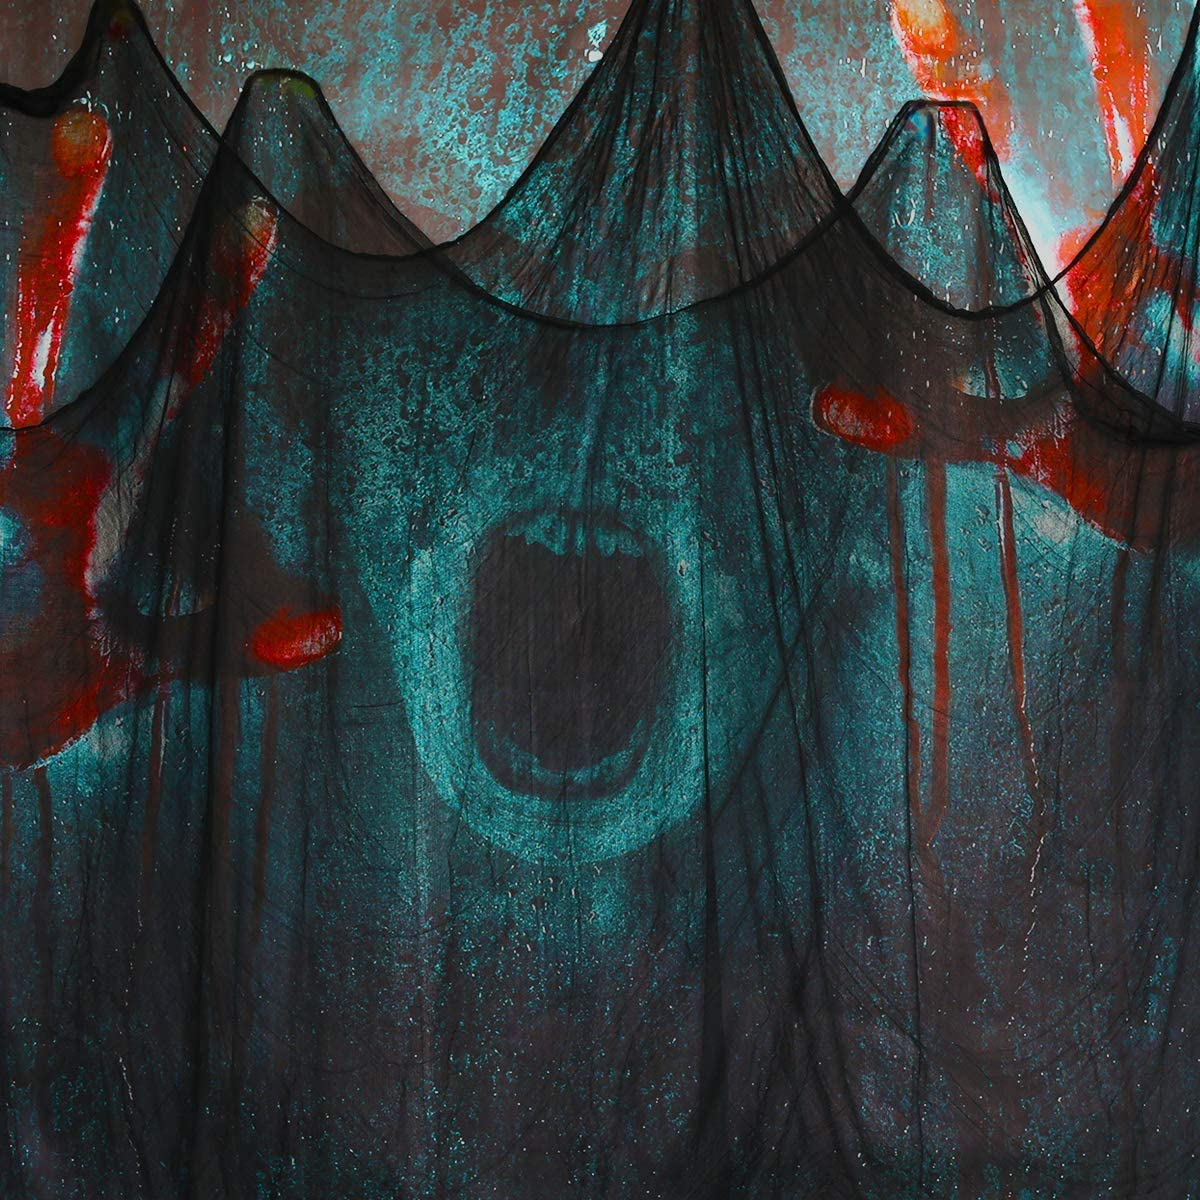 79 Inches x 360 Inches Halloween Creepy Cloth Cheesecloth, Spooky Halloween Decorations Outdoor Party Supplies Décor for Haunted House, Patio, Garden, Indoor Wall Windows